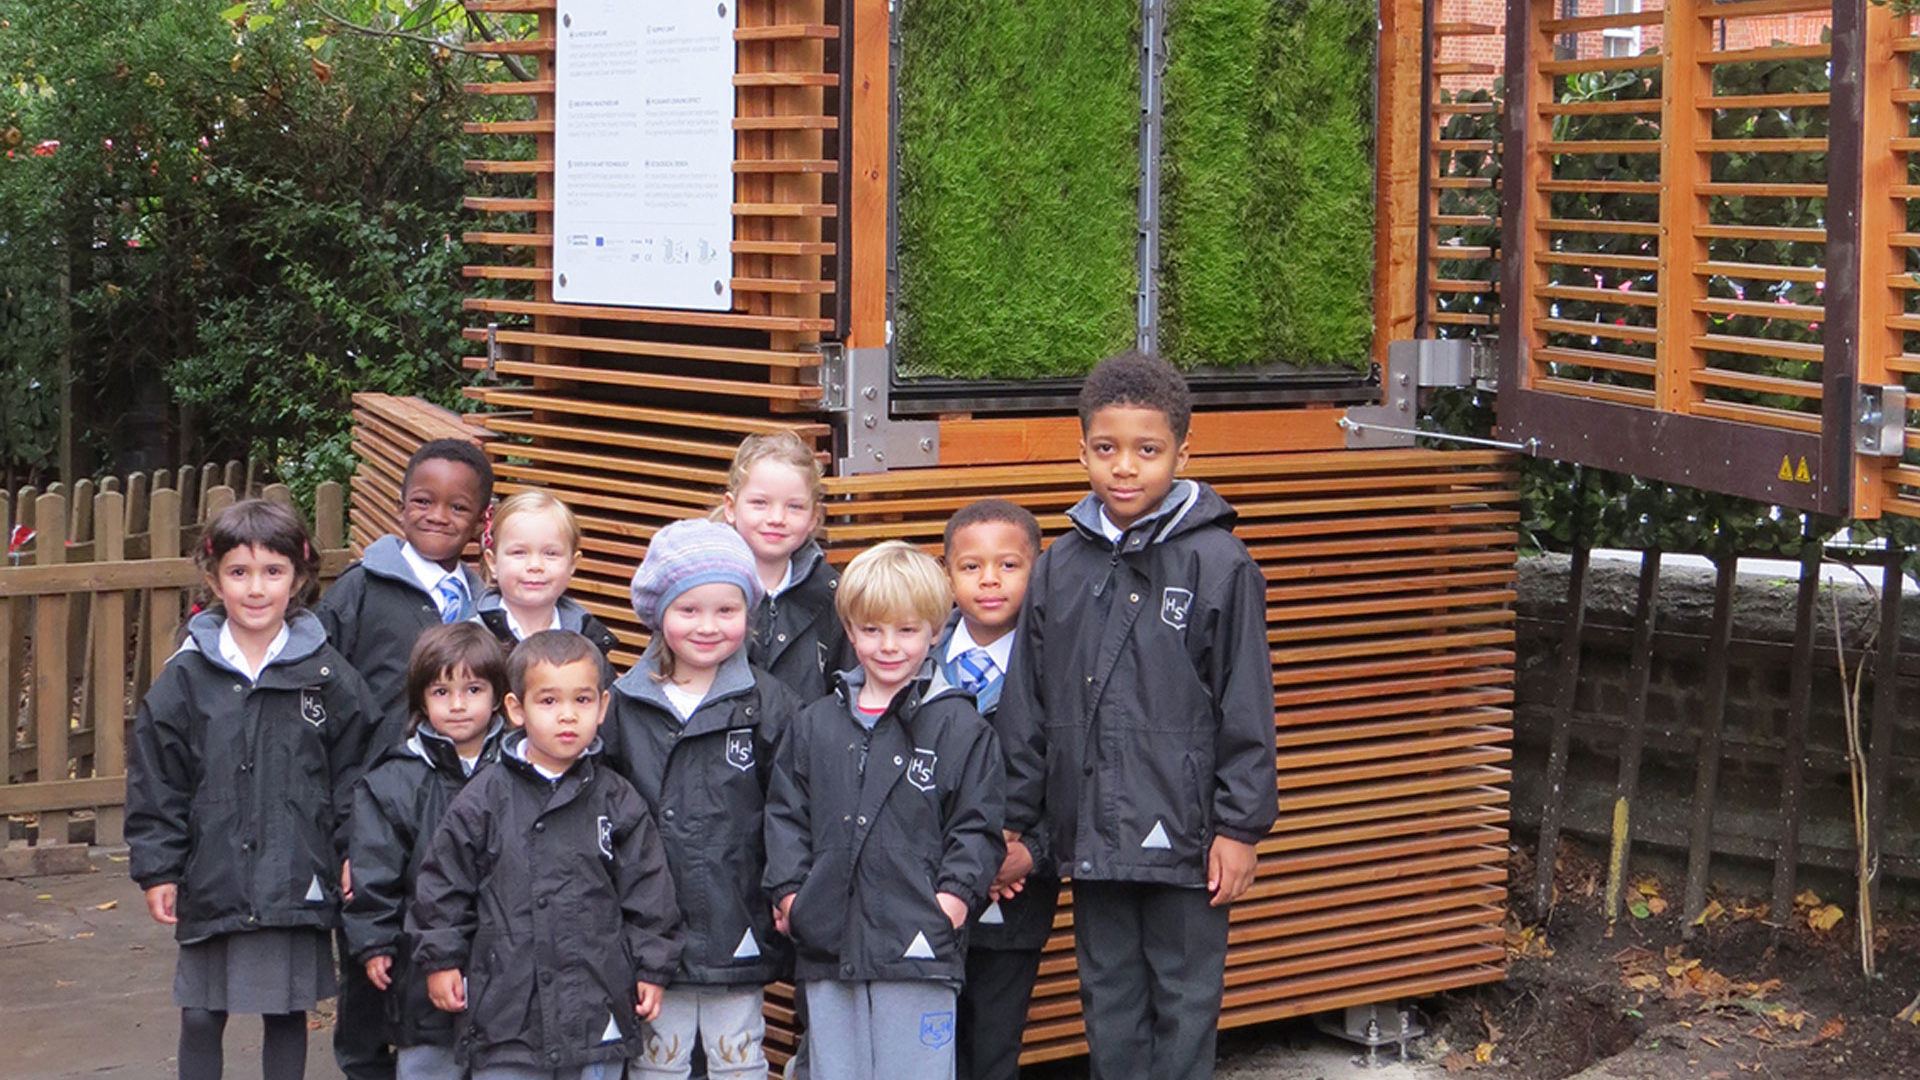 School as a use-case for CityTrees